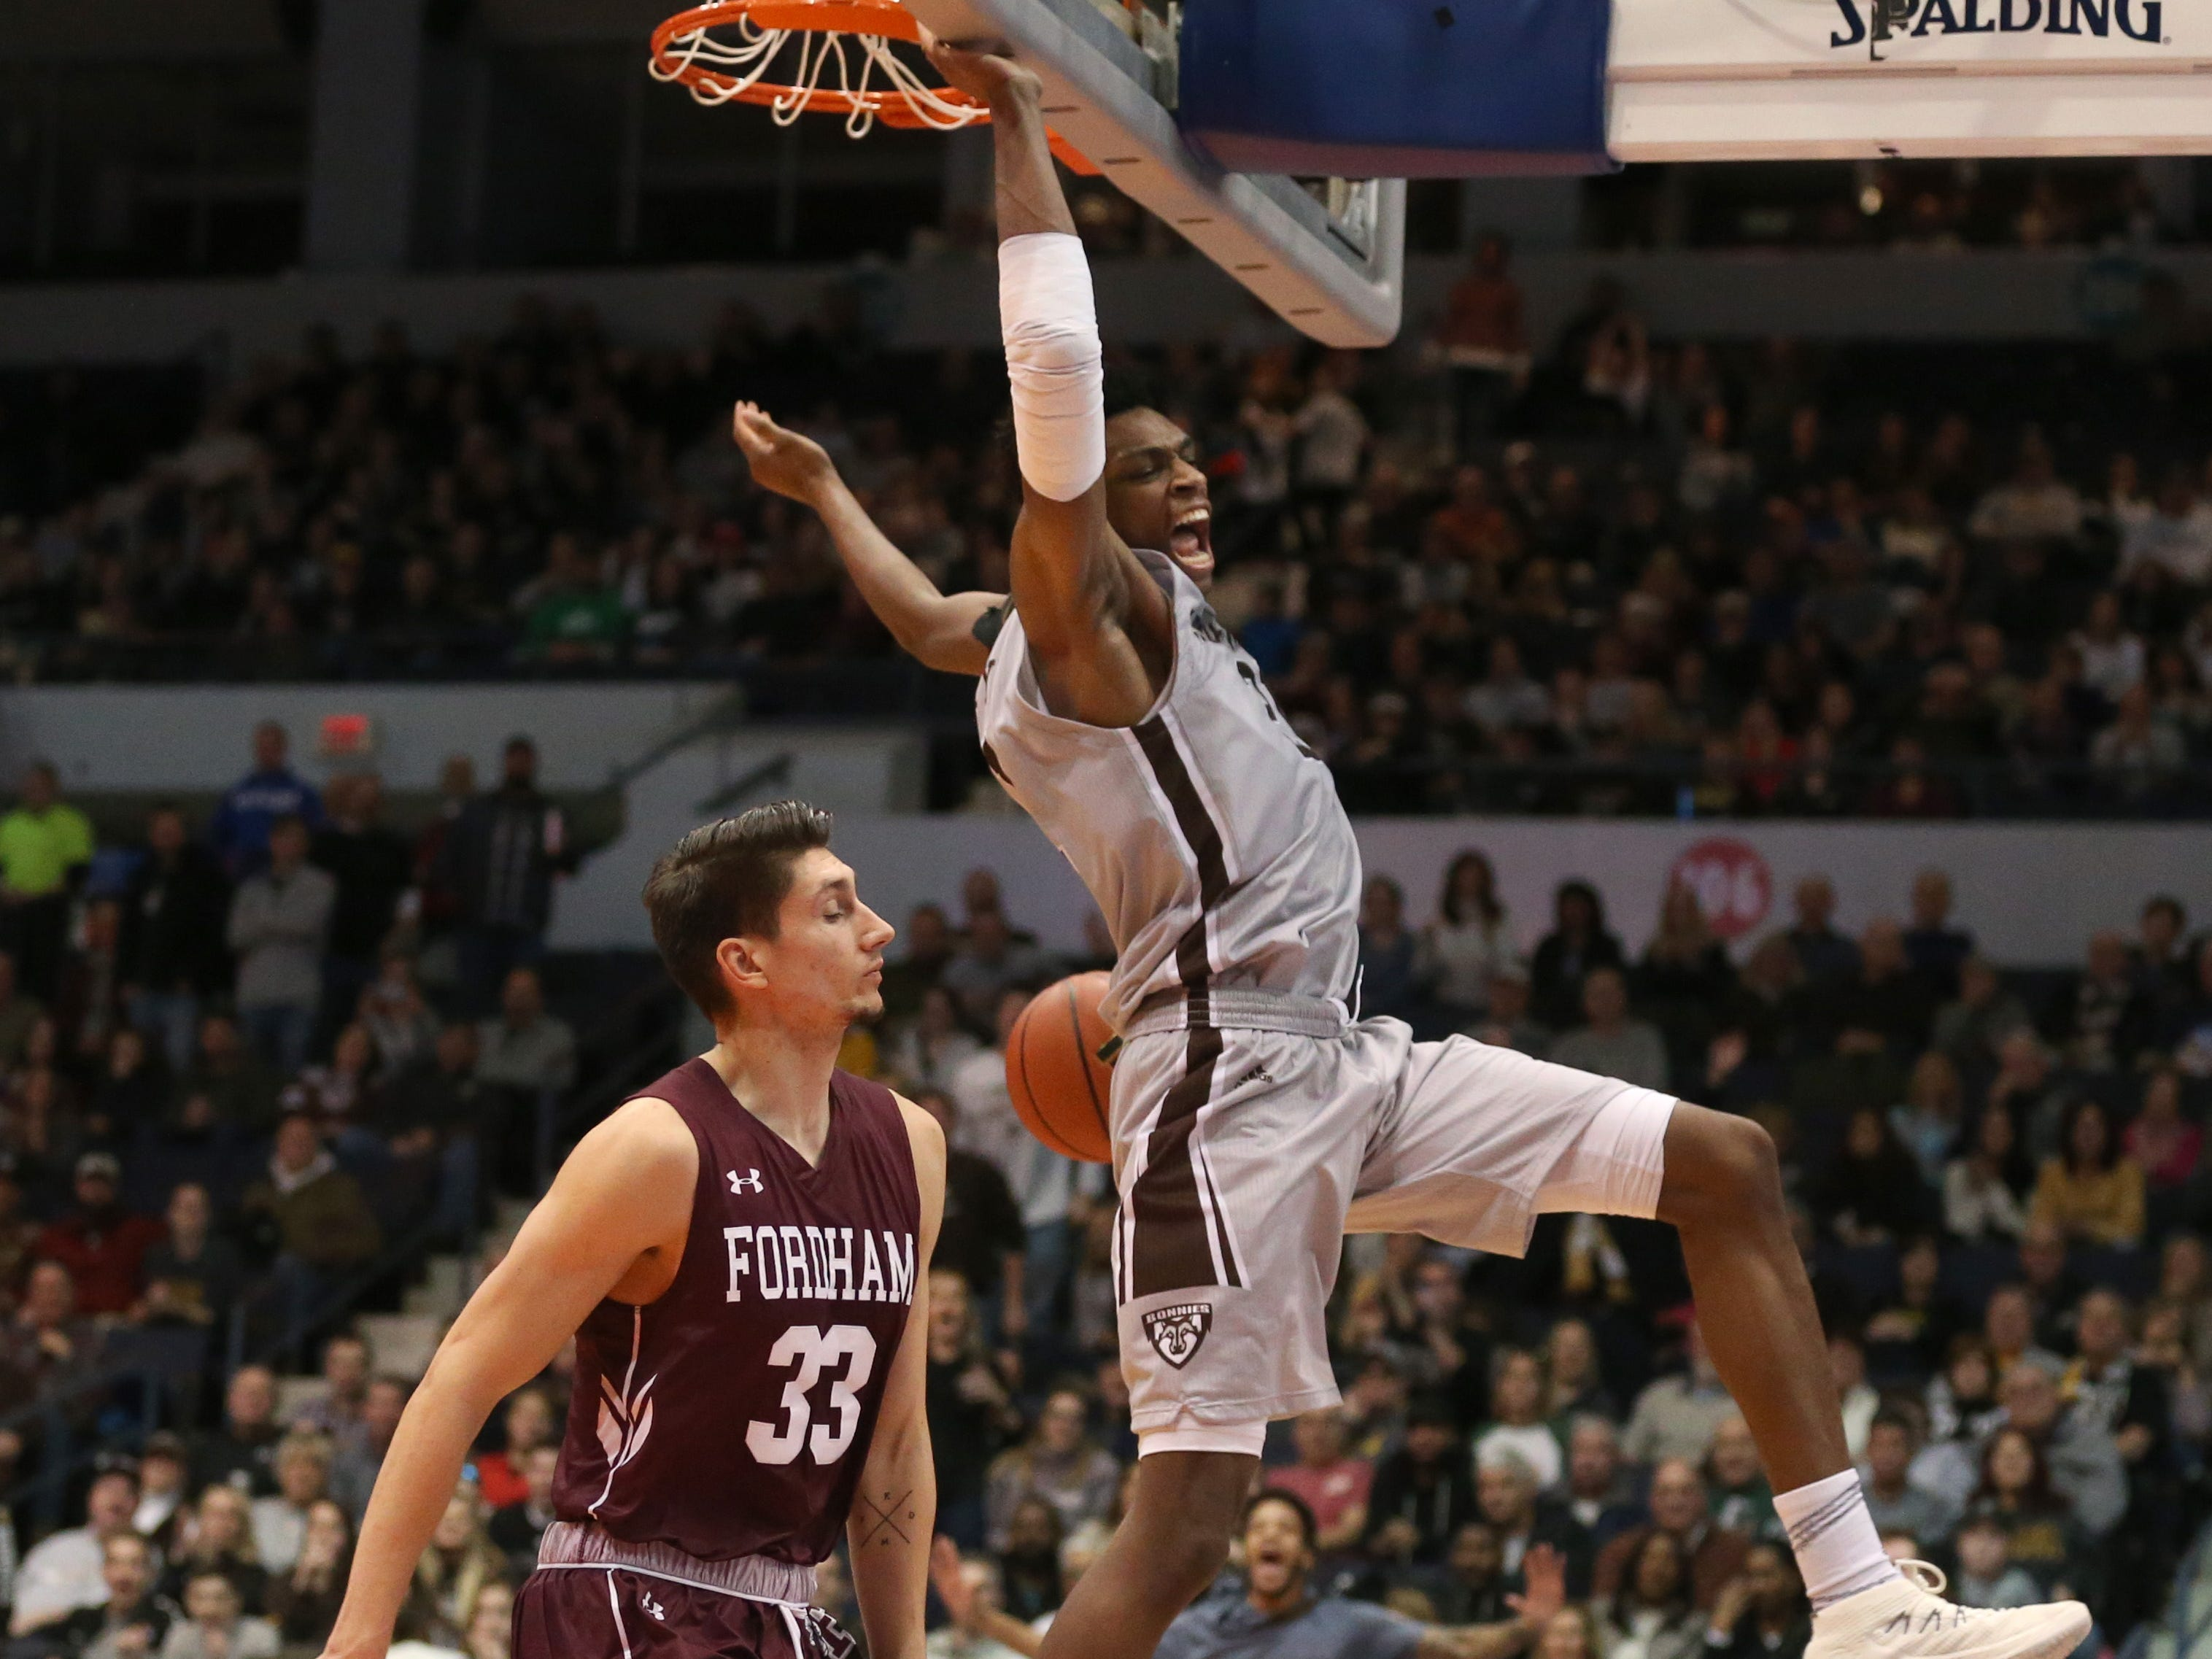 St. Bonaventure's Osun Osunniyi slams home the final two points of the game as he outraces Fordham's David Pekarek to the basket.